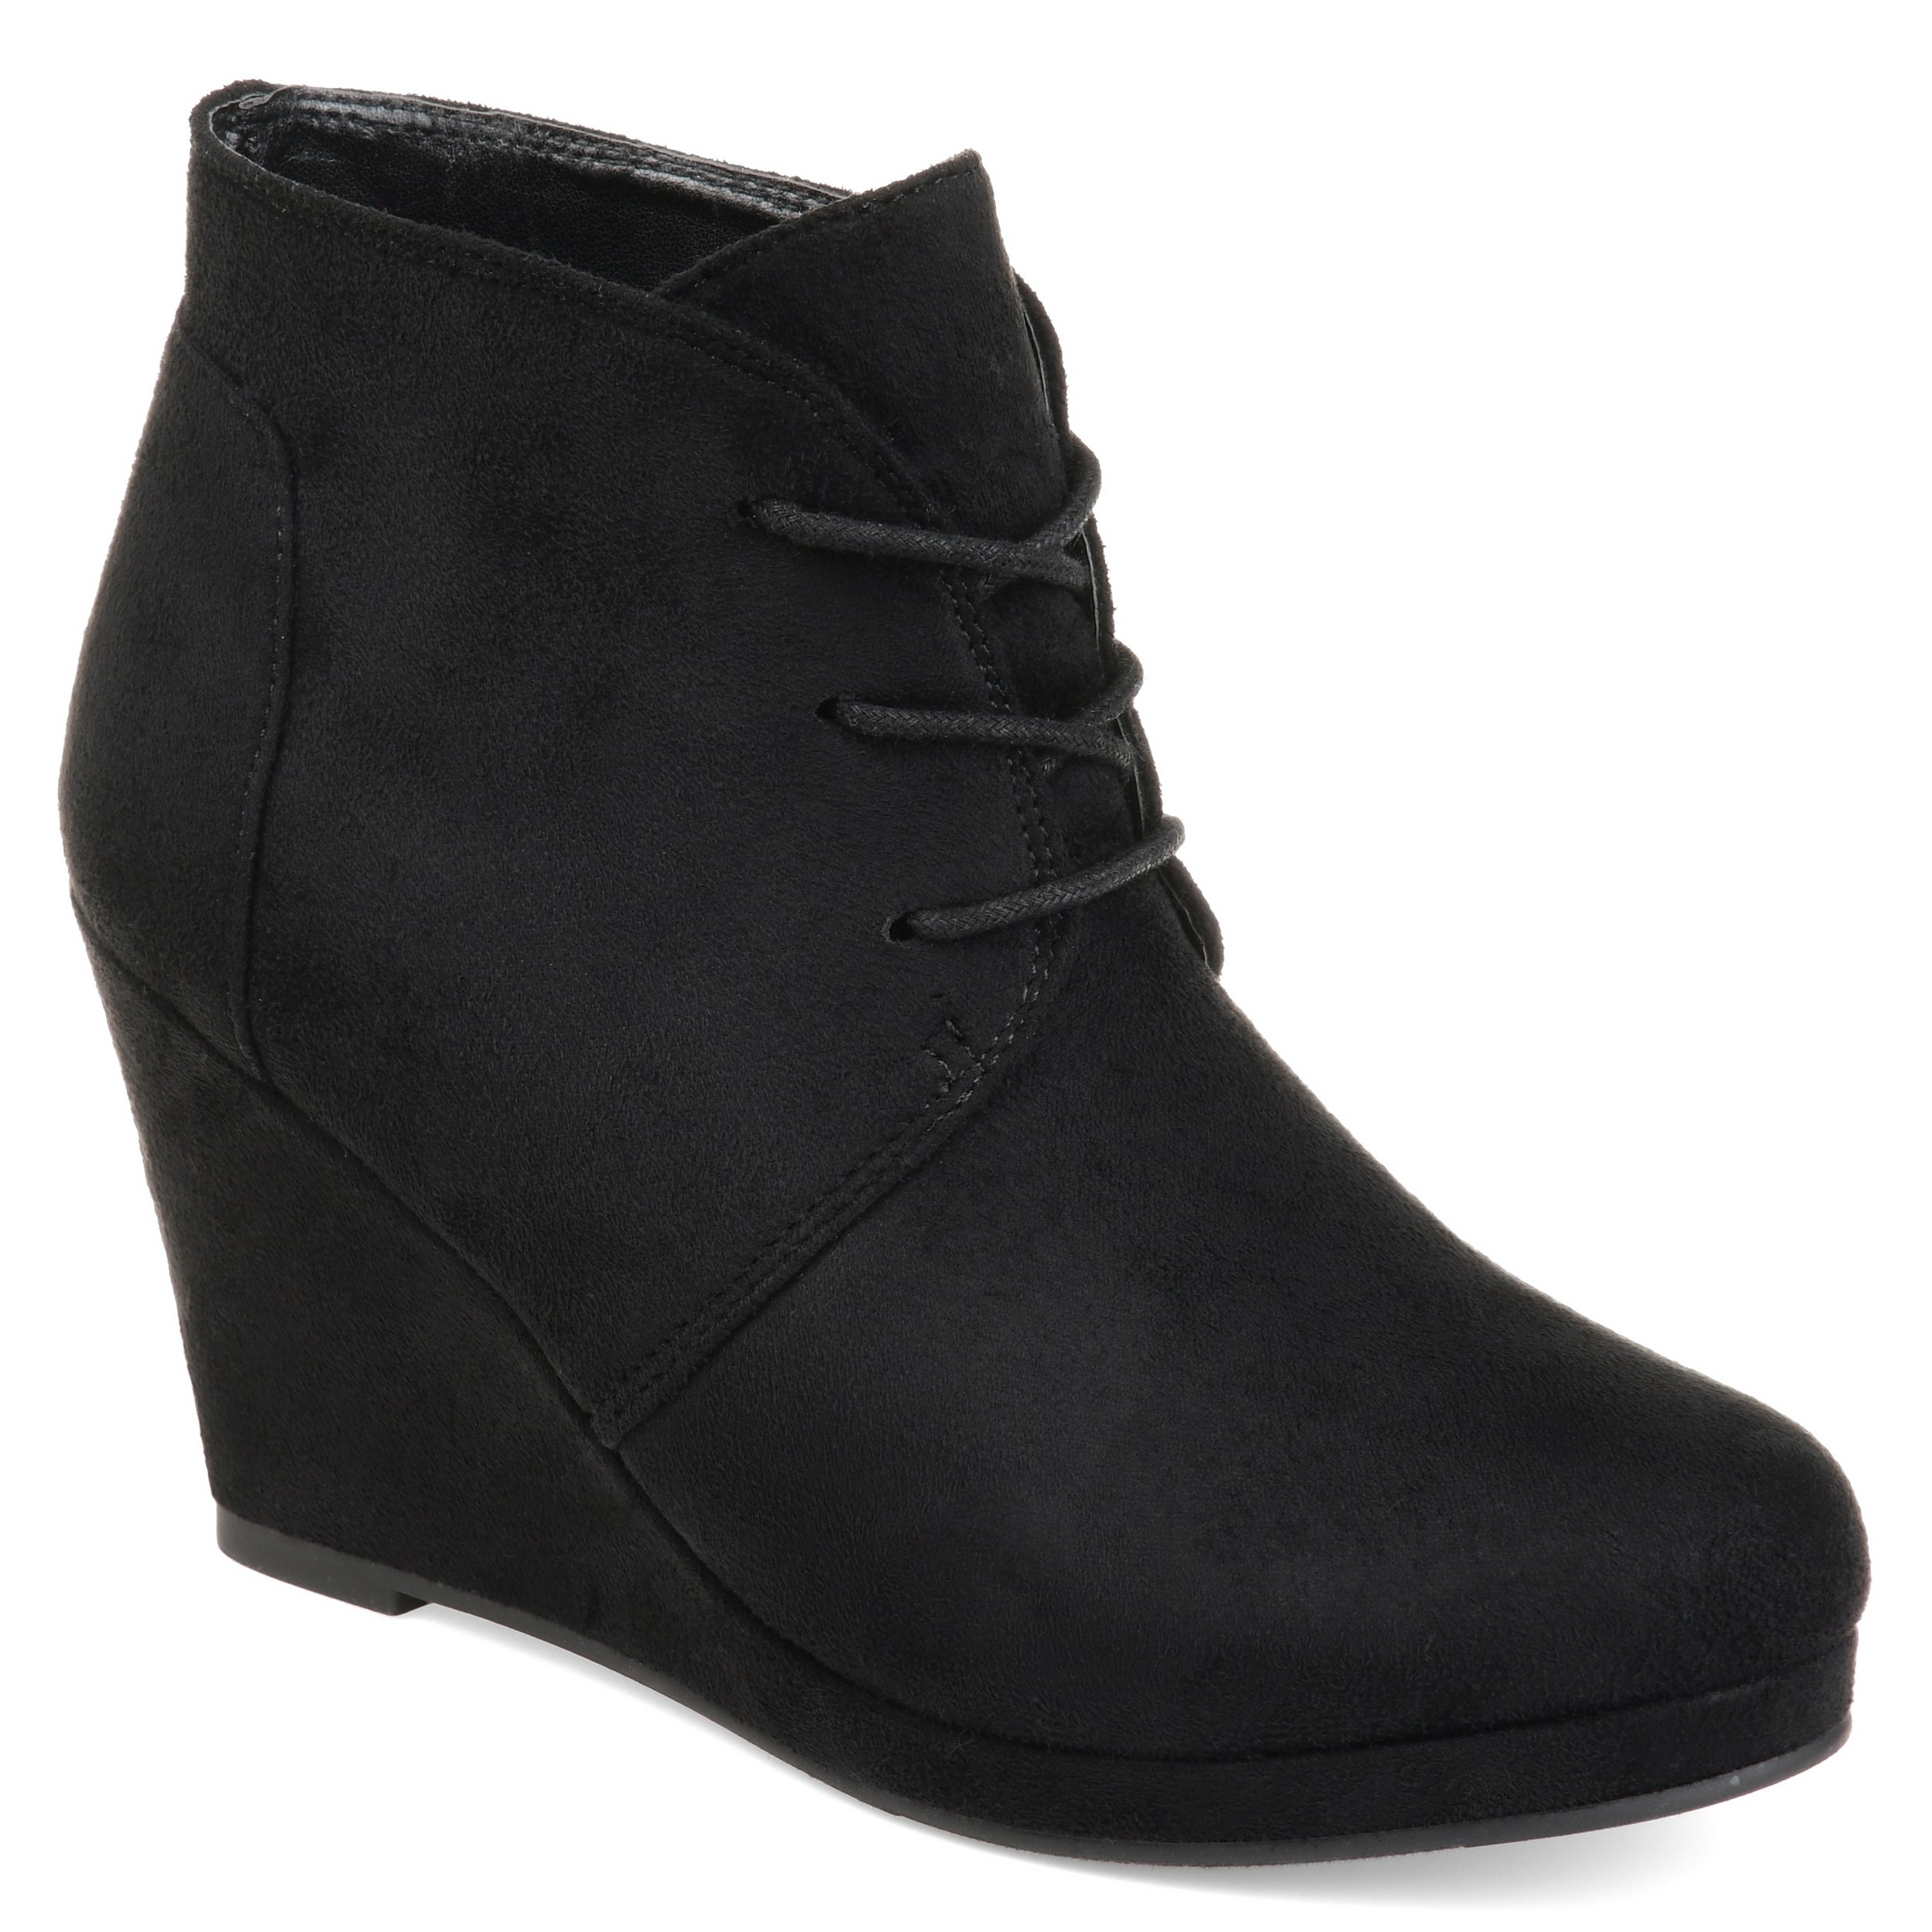 Enter' Faux Suede Wedge Booties